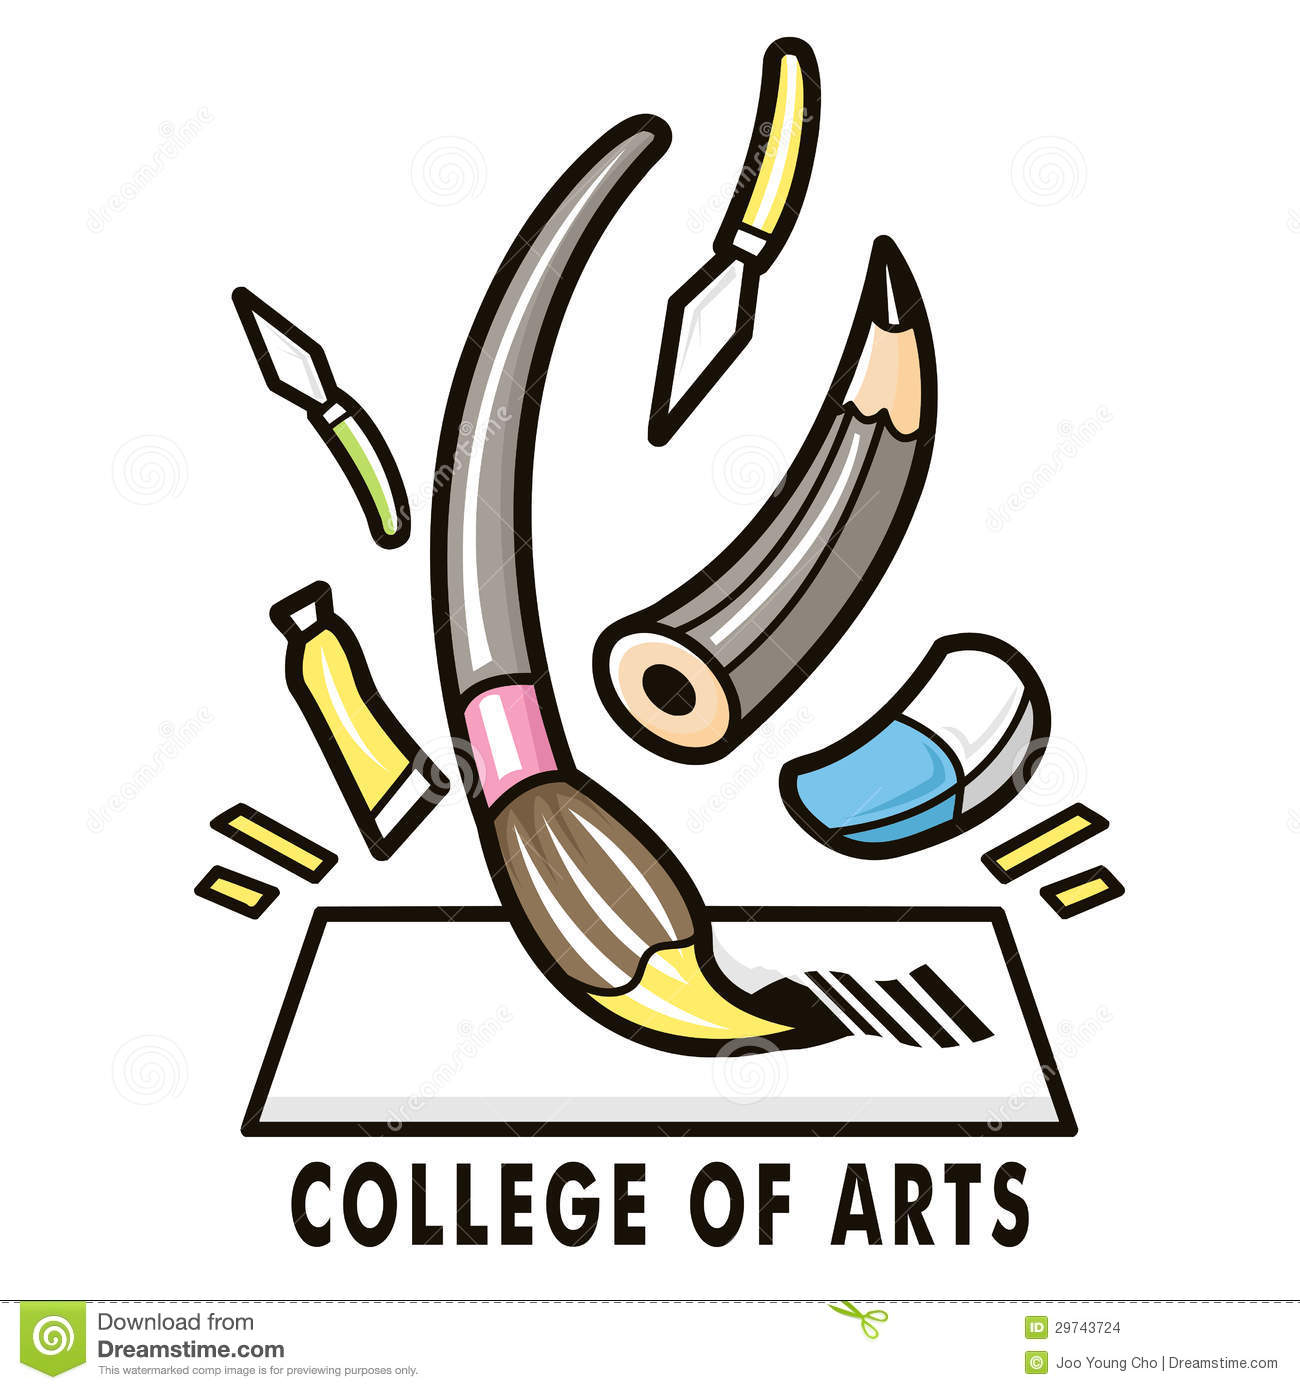 Character Design College Major : The feast of a variety art tools college fine arts